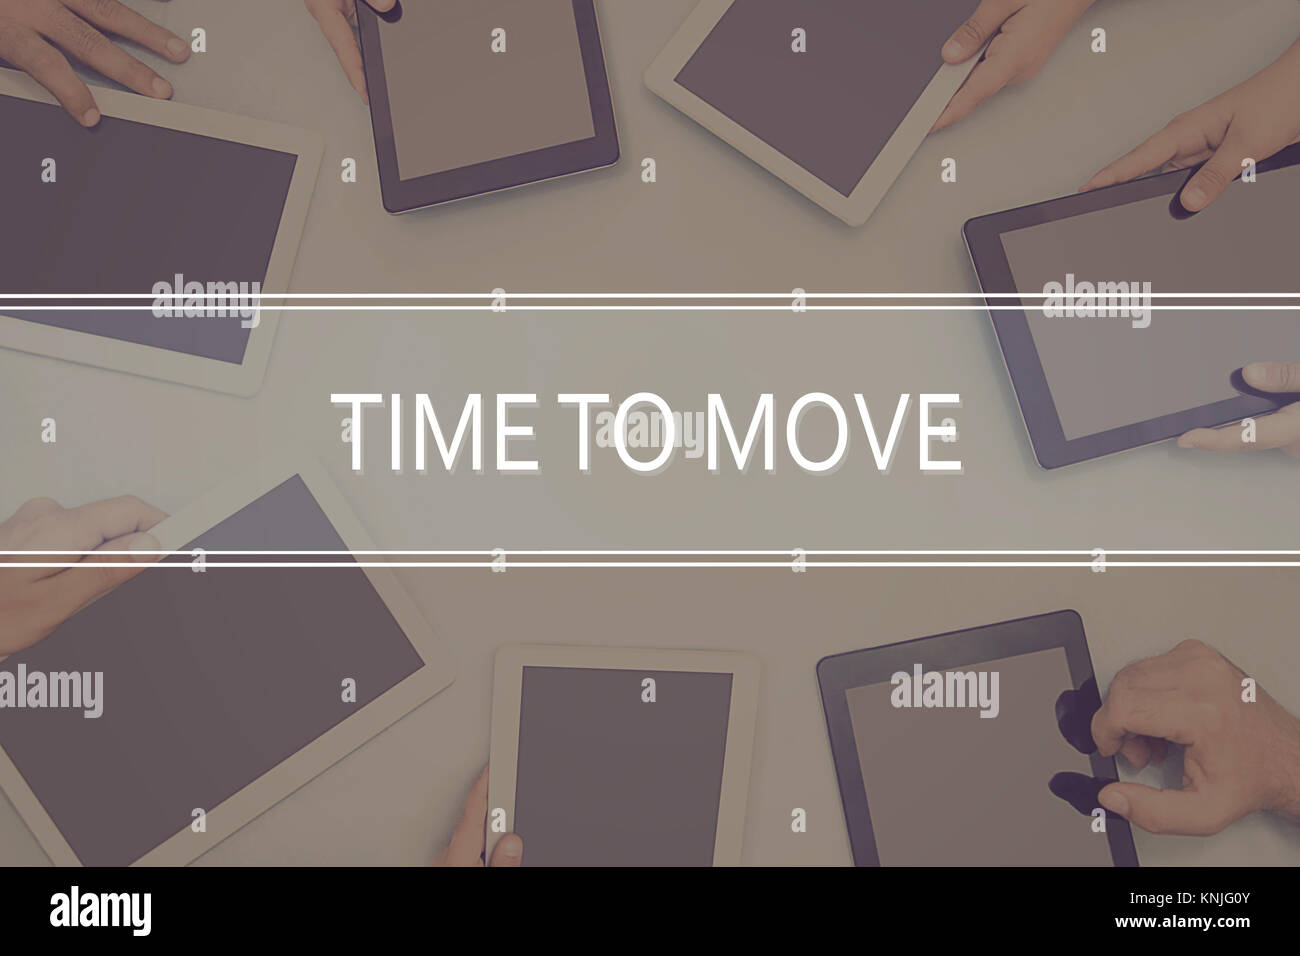 TIME TO MOVE CONCEPT Business Concept. - Stock Image